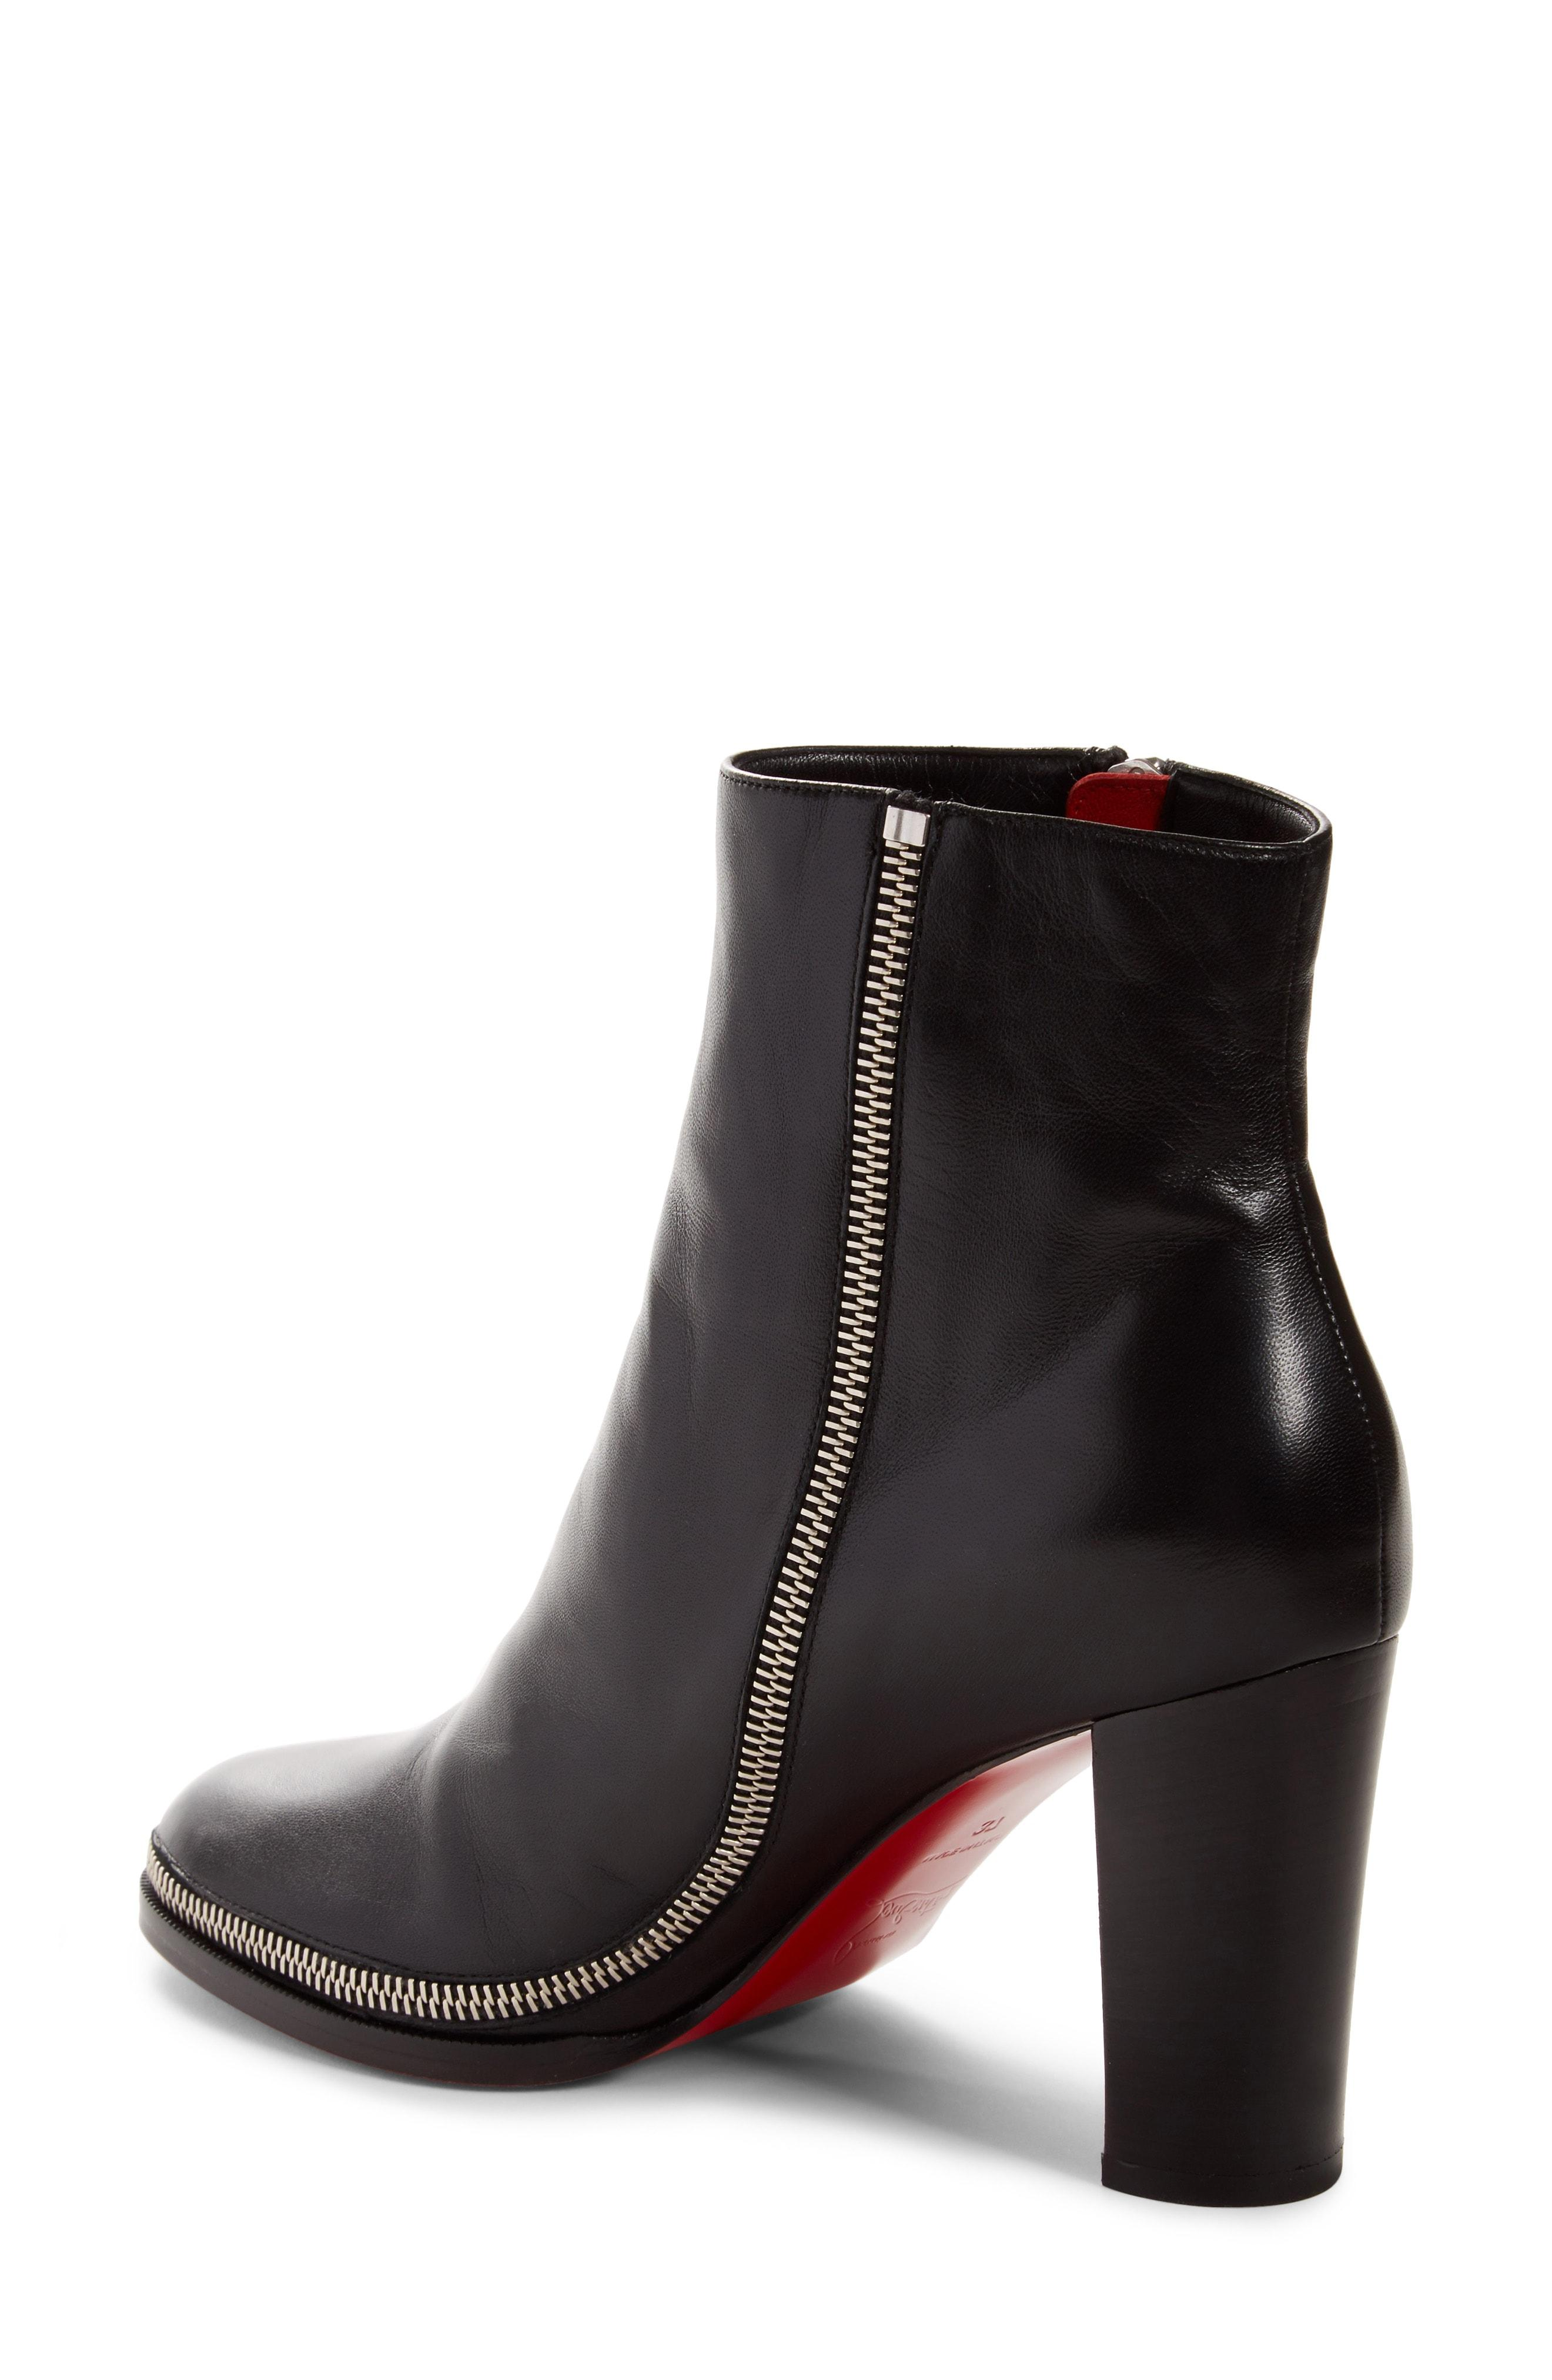 0b0128176d7b Christian Louboutin Telezip Crinkled Leather Red Sole Ankle Boots In Black